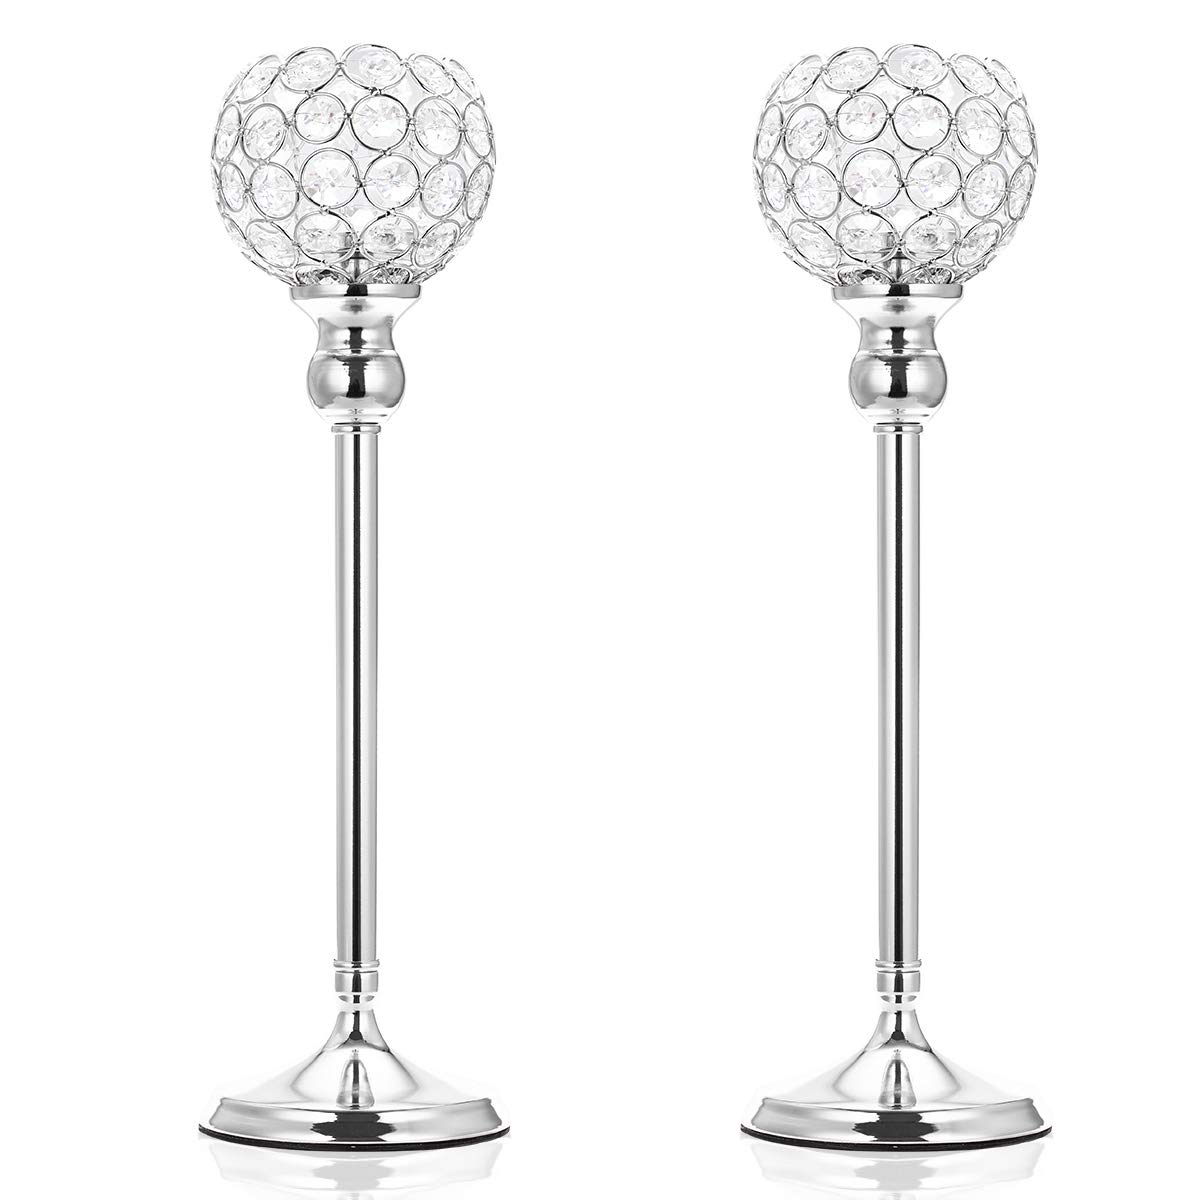 ManChDa Valentines Gift Silver Crystal Spherical Candle Holders Sets of 2 Wedding Table Centerpieces for Birthday Anniversary Celebration Modern Decoration (Large, 15.8'')